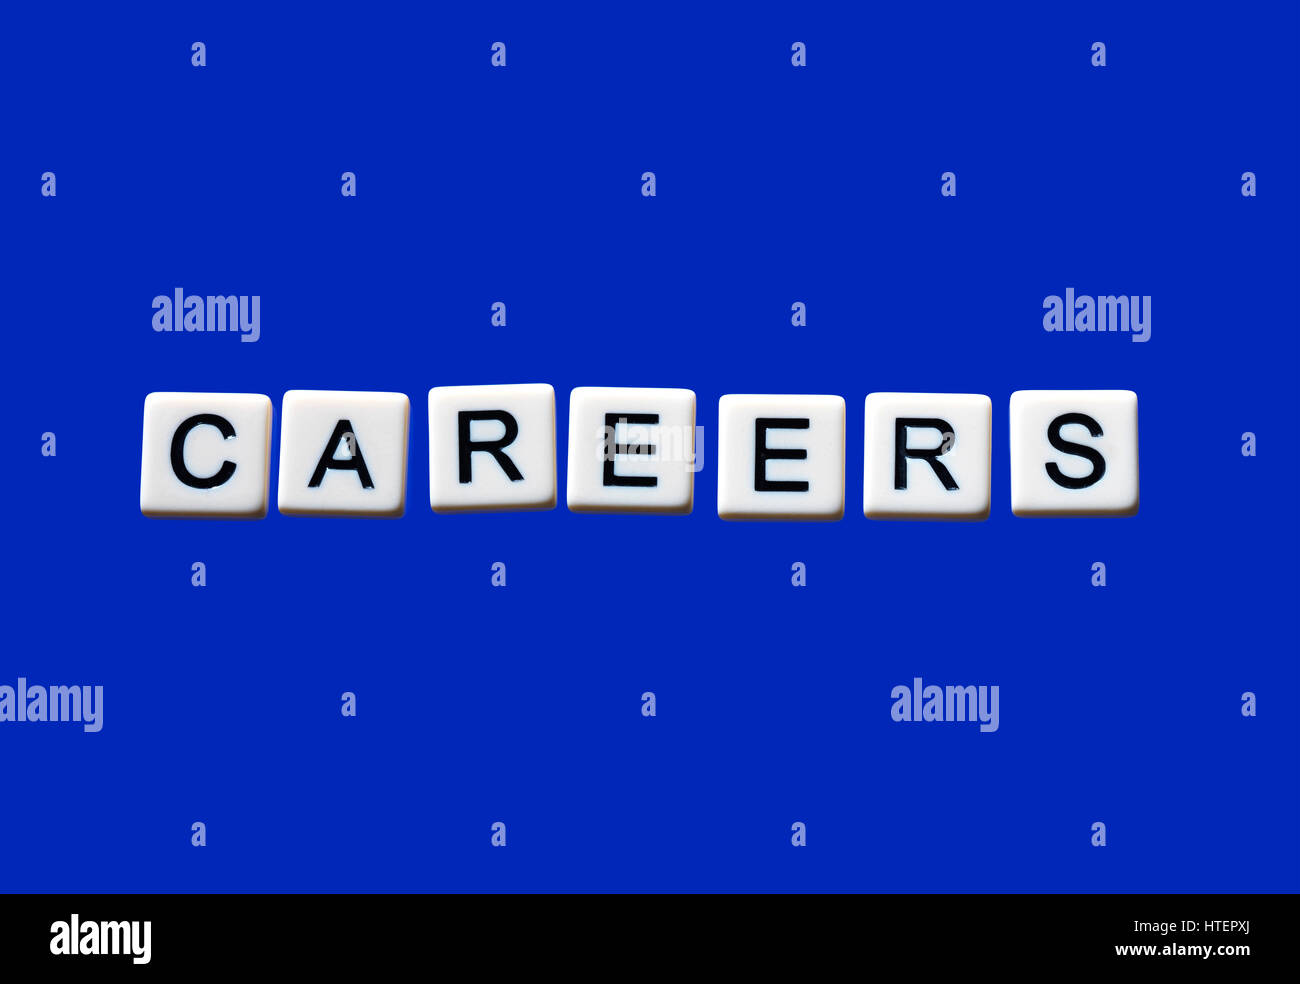 Careers highlighted on white blocks - Stock Image